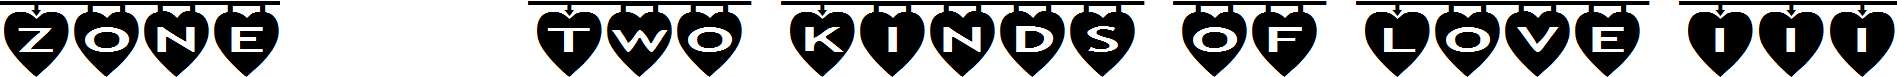 Zone23_Two-Kinds-of-Love-III